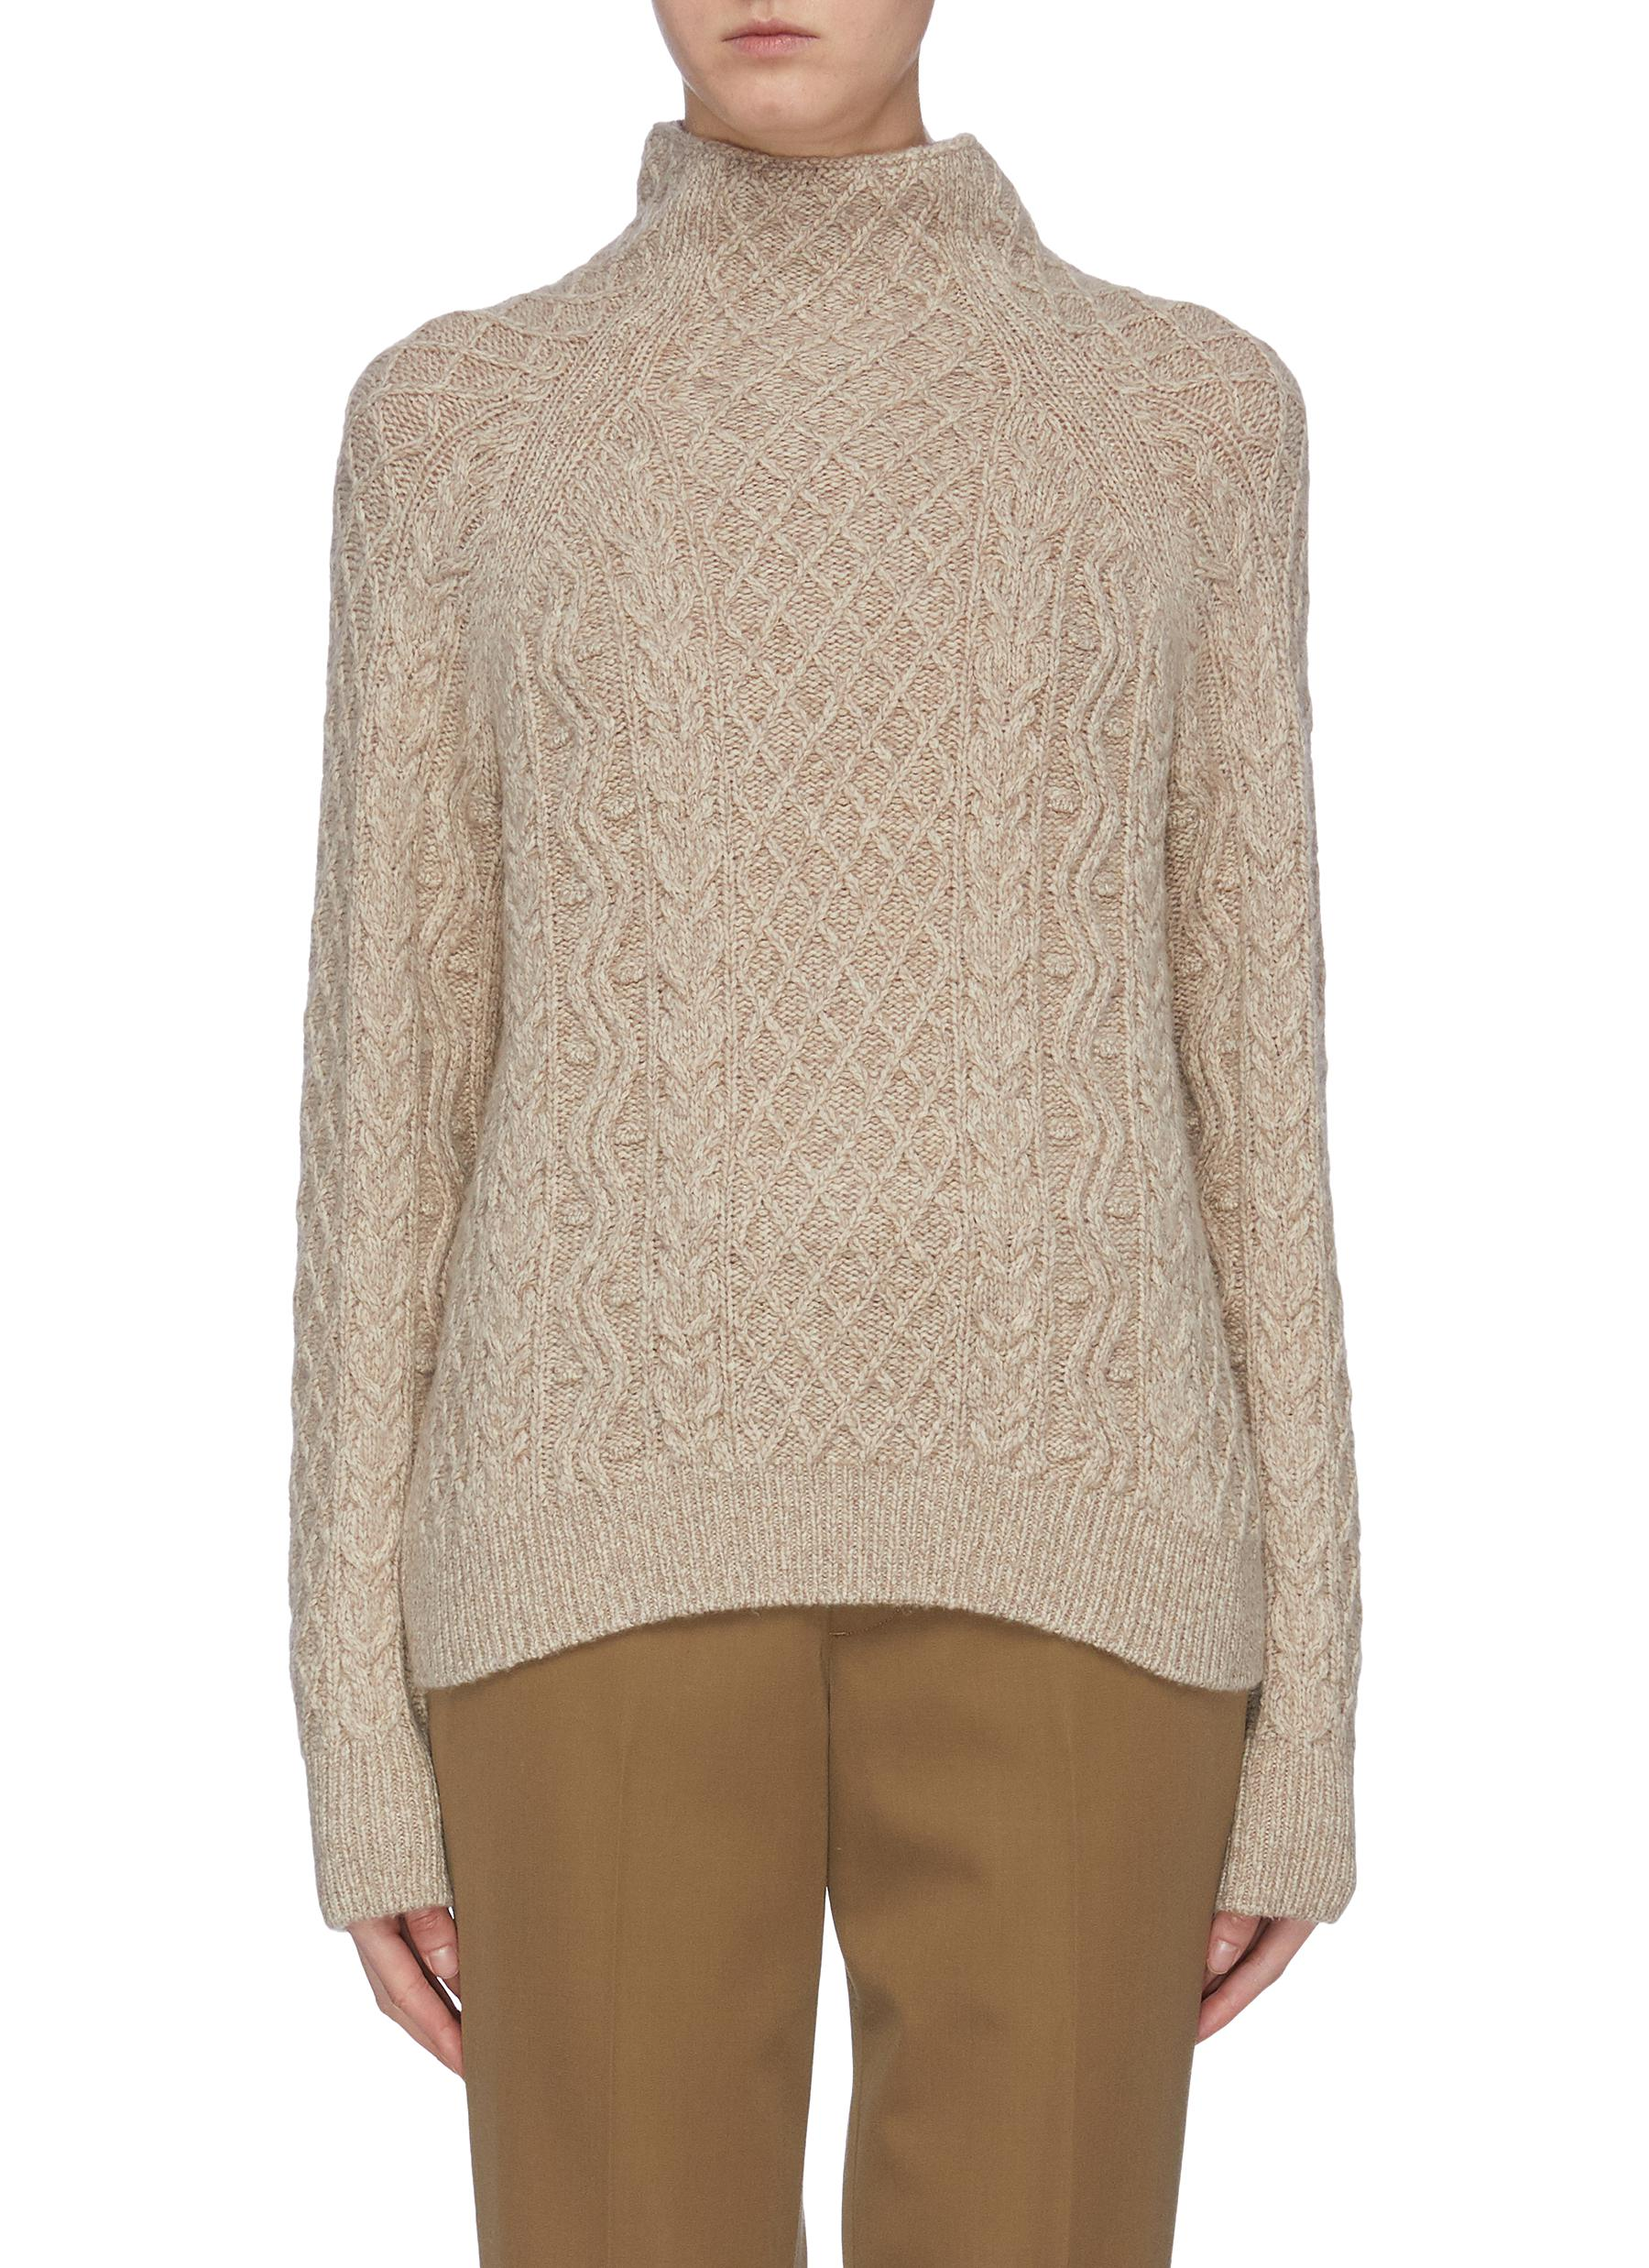 Zig Zag cable knit mock neck sweater by Vince